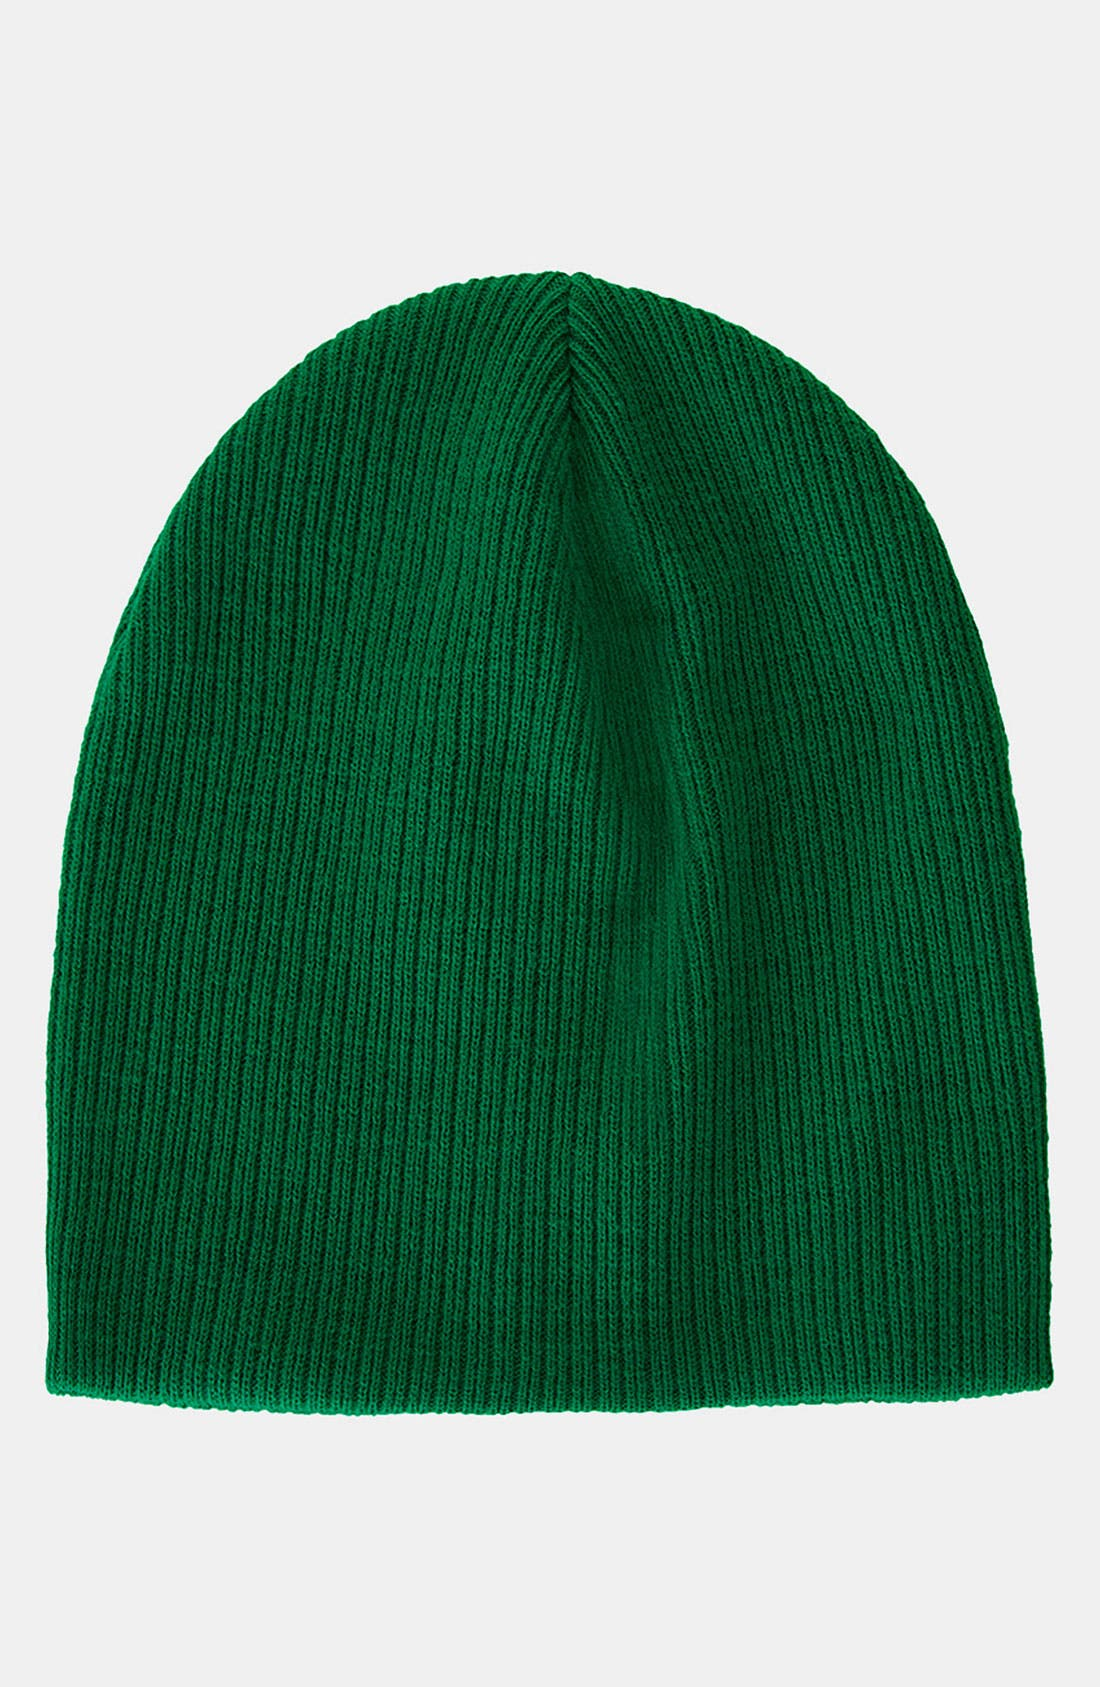 Alternate Image 1 Selected - Topshop 'Skater' Ribbed Beanie